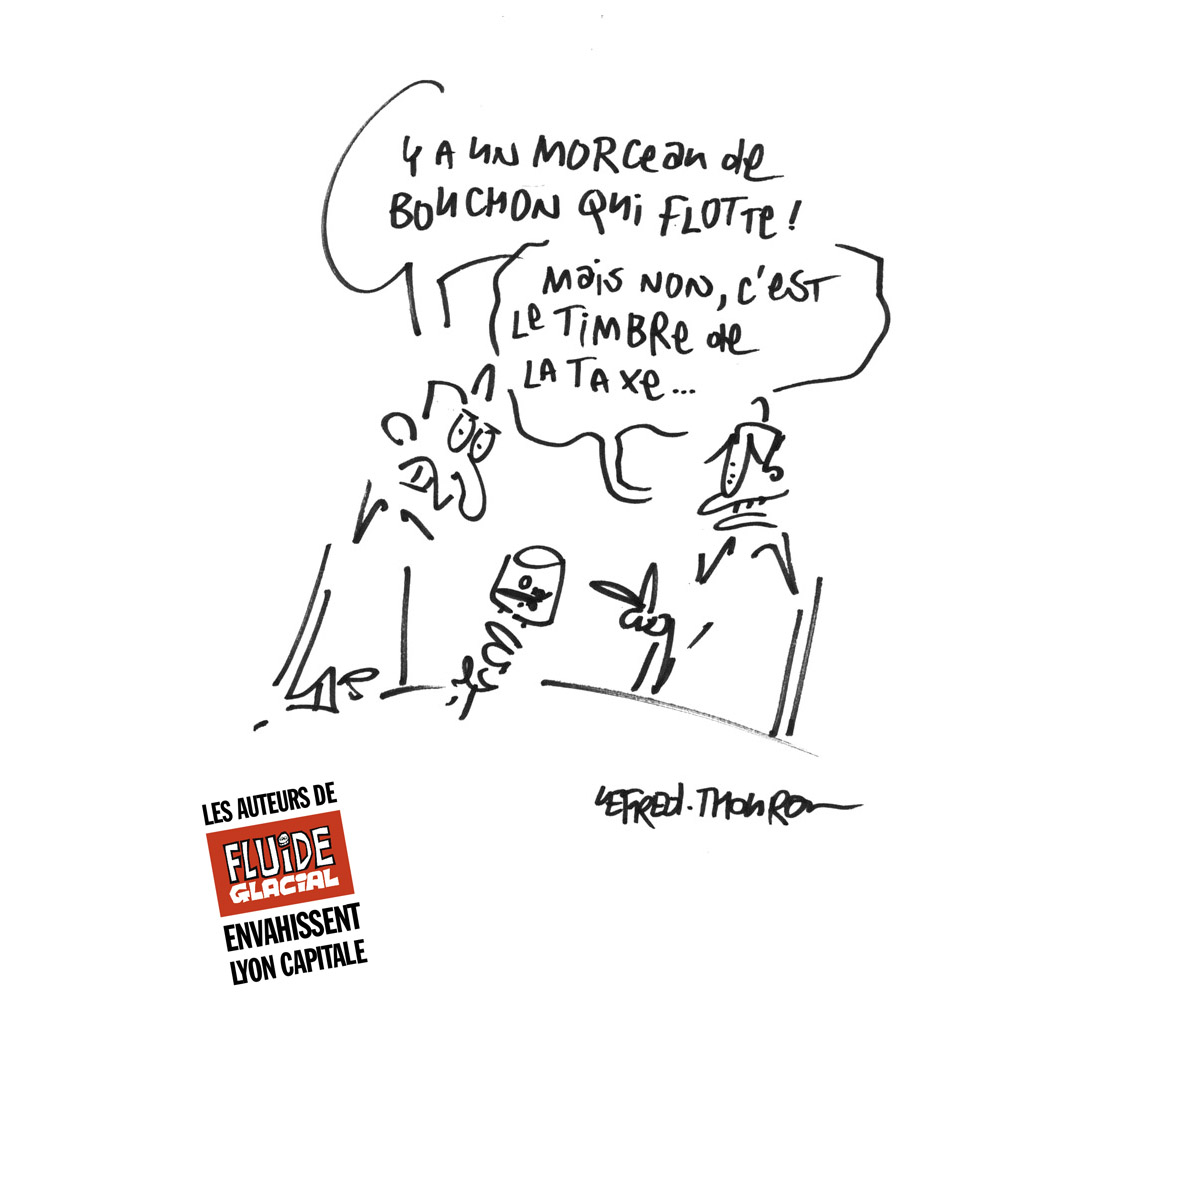 Lefred Thouron - Taxe vin ()